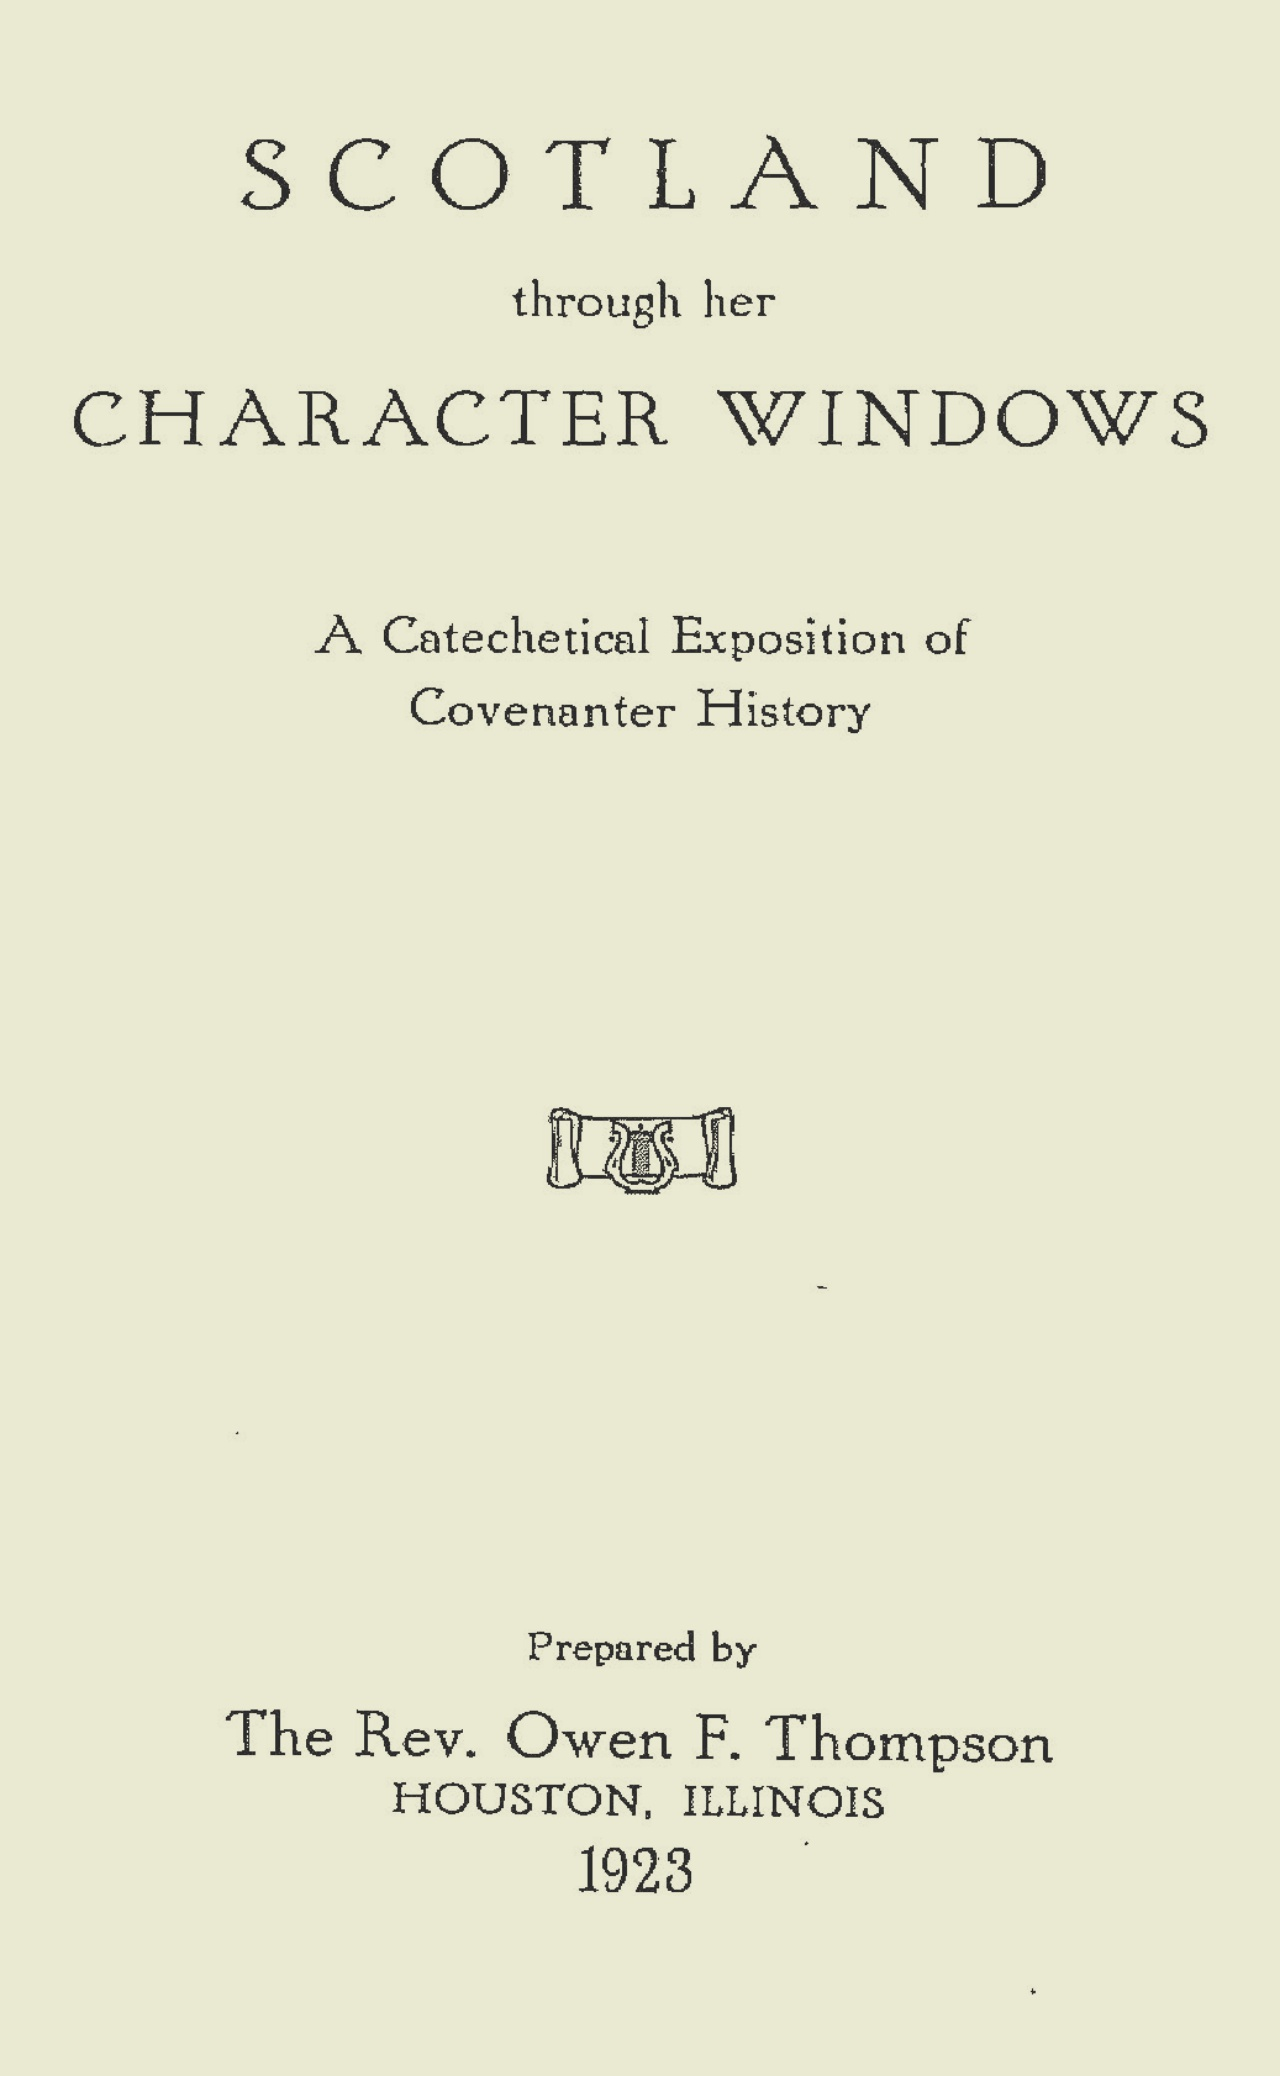 Thompson, Owen Foster, Scotland Through Her Character Windows Title Page.jpg